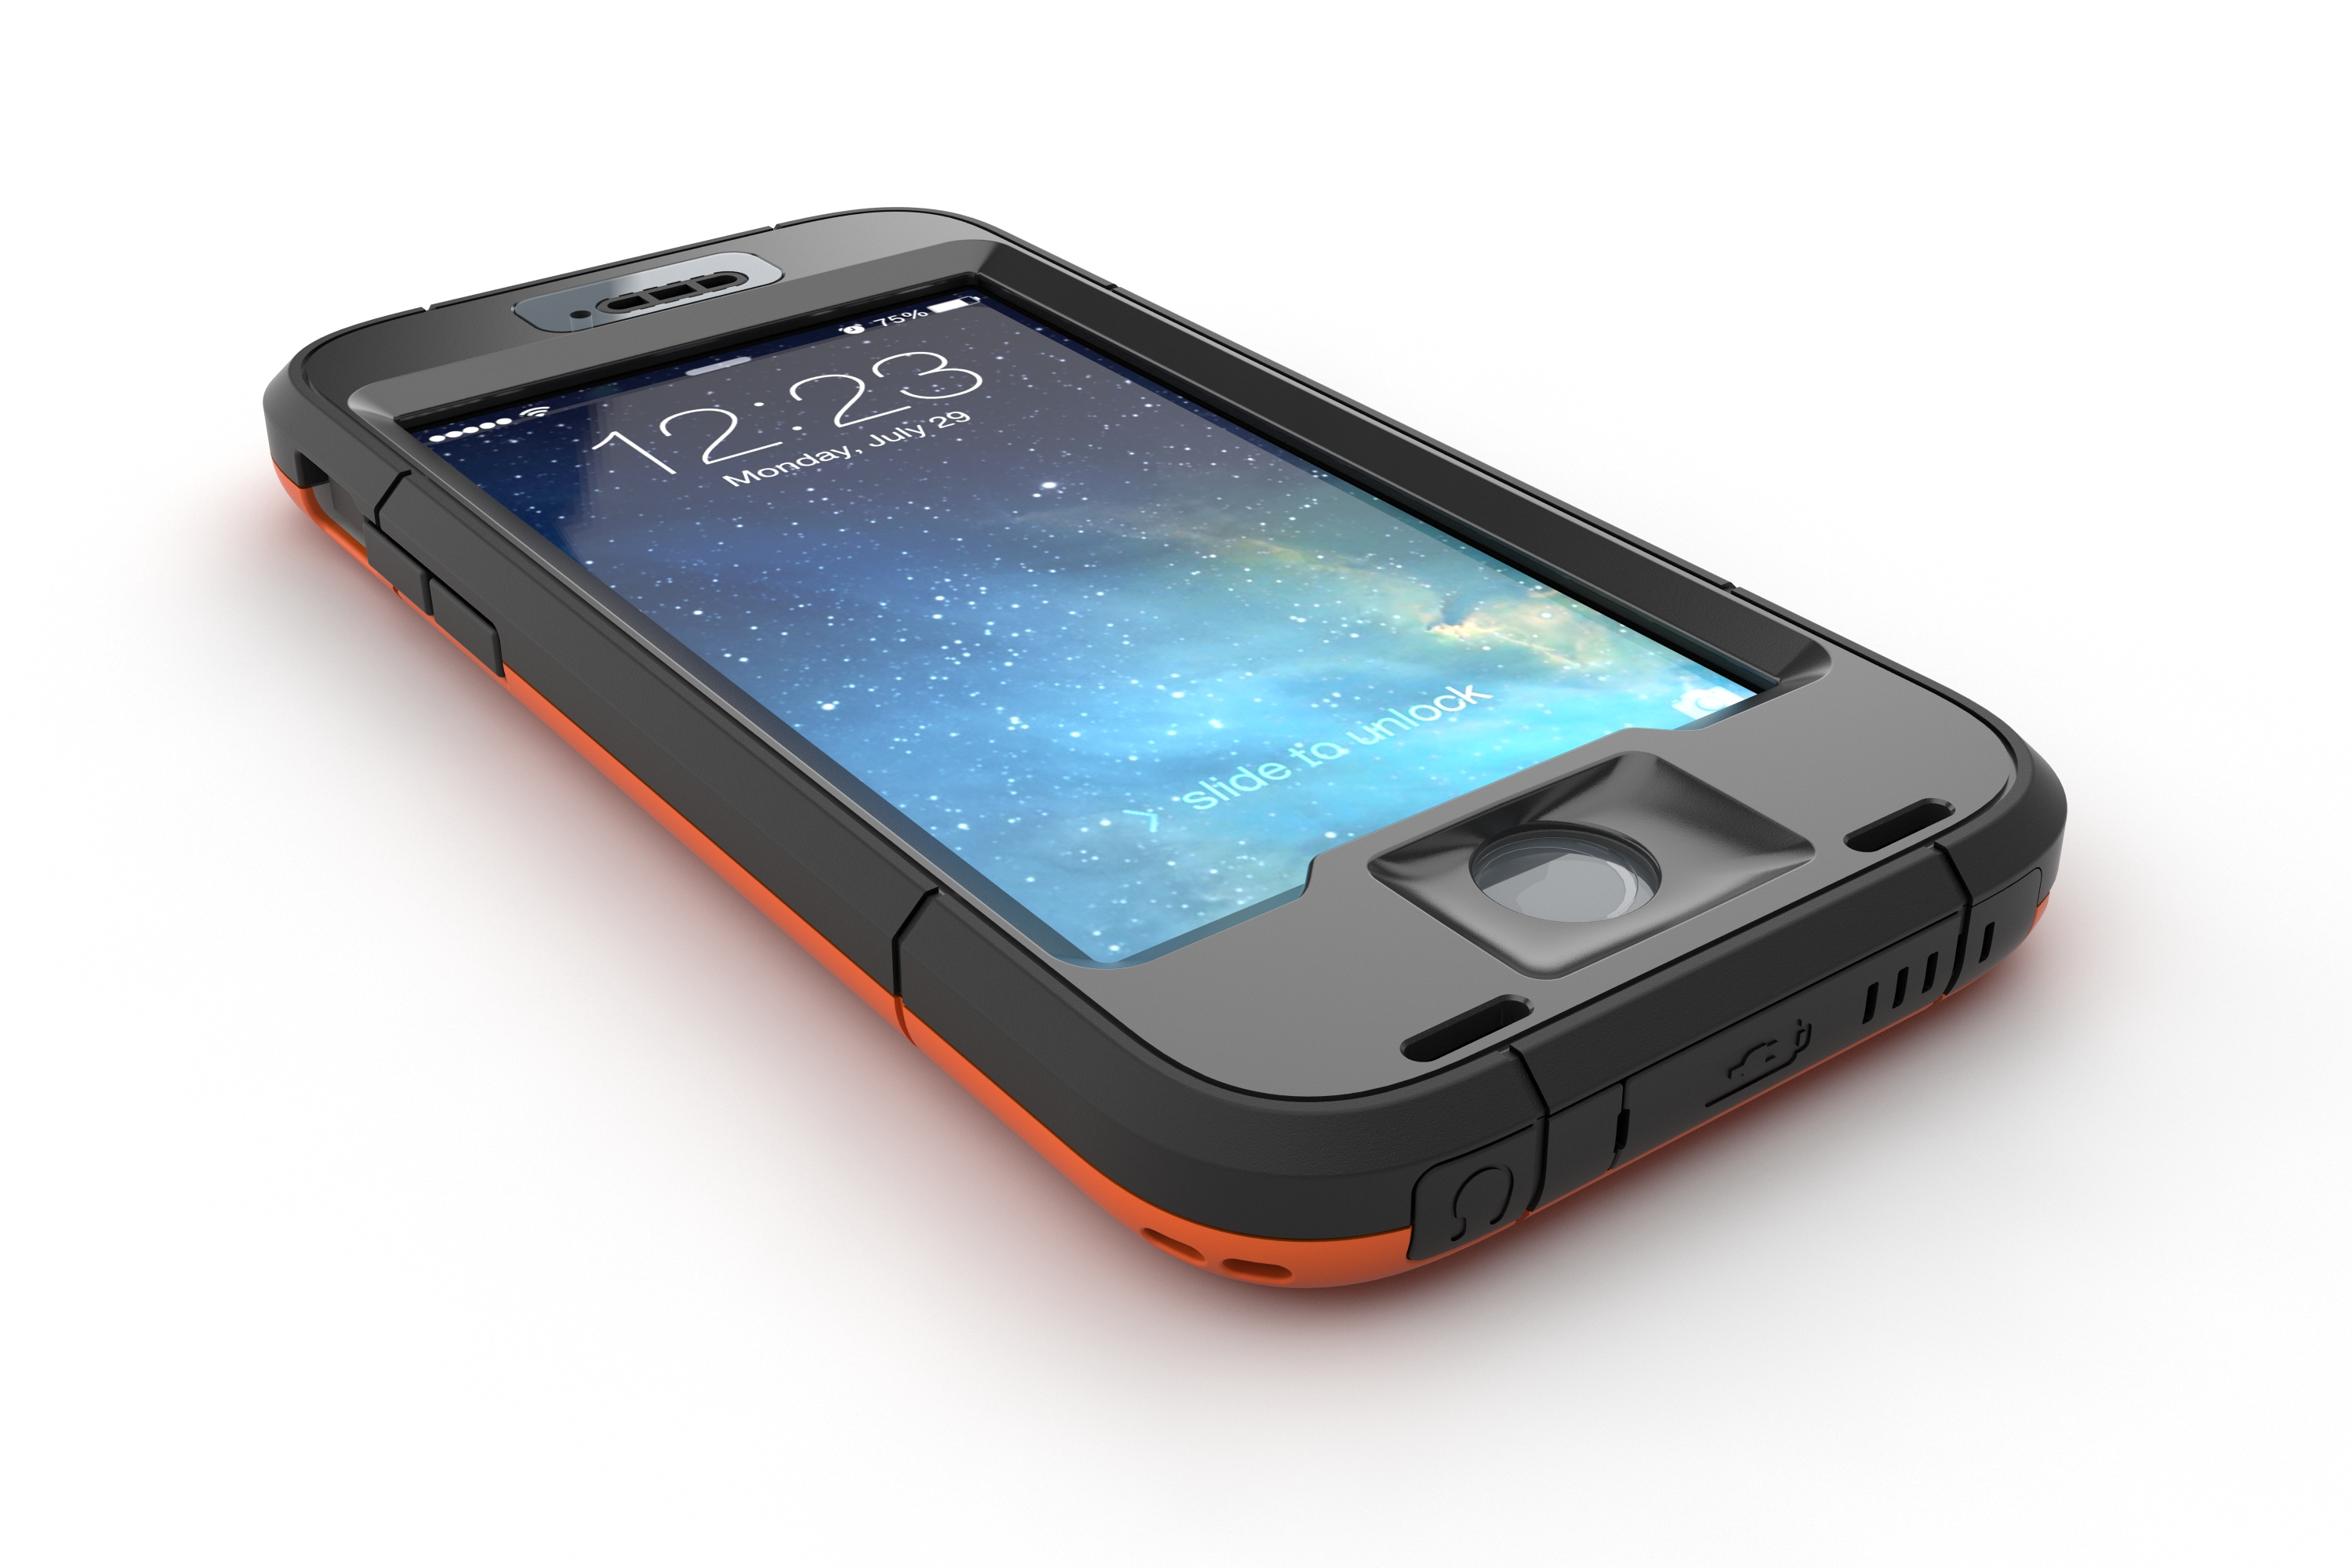 Wetsuit Iphone 6 Waterproof Rugged Case 187 Dog And Bone Cases